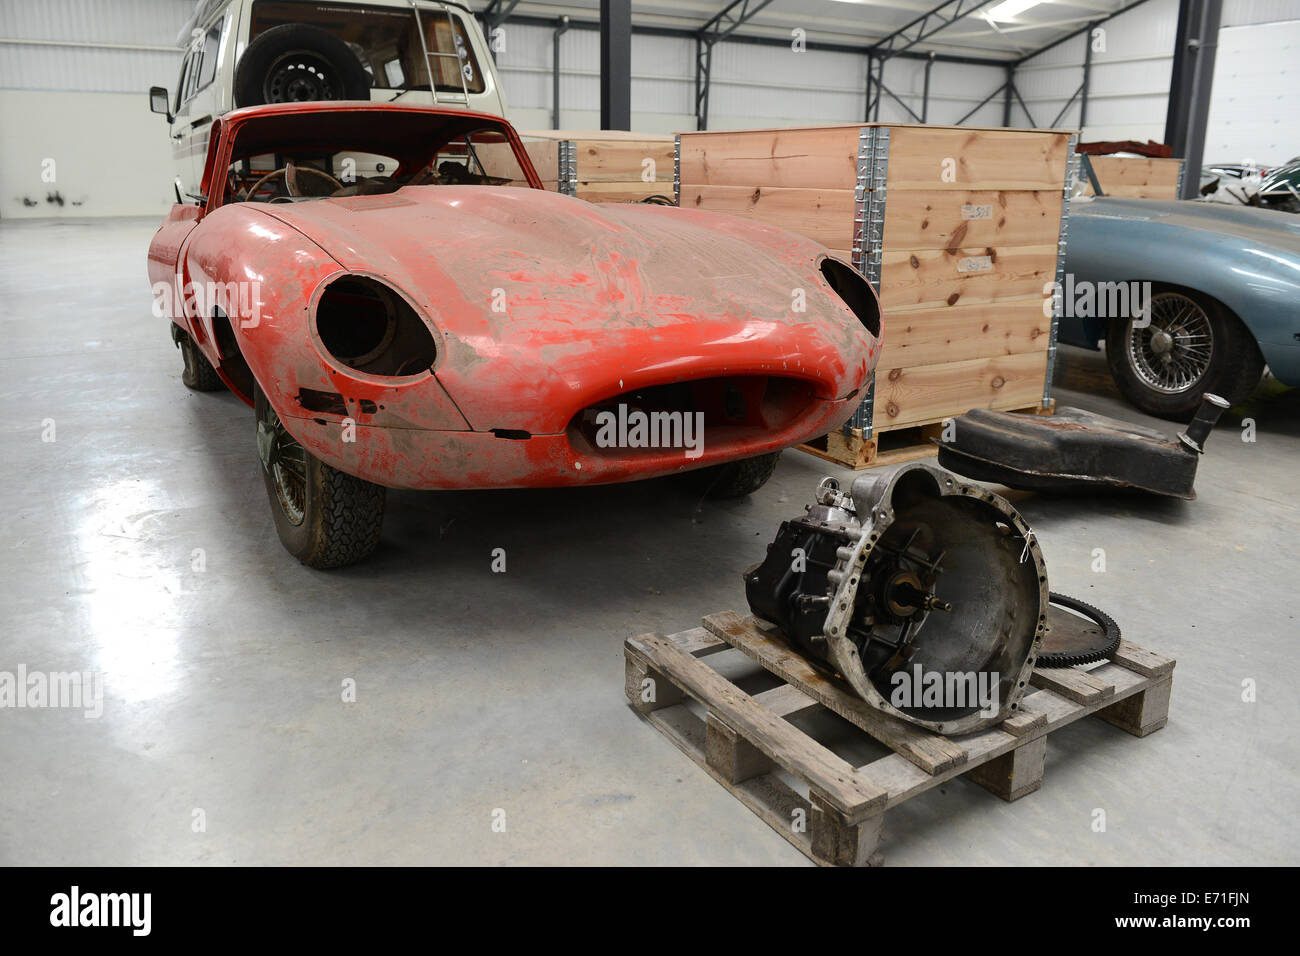 Old vintage cars E Type Jaguar car waiting to be restored at ...